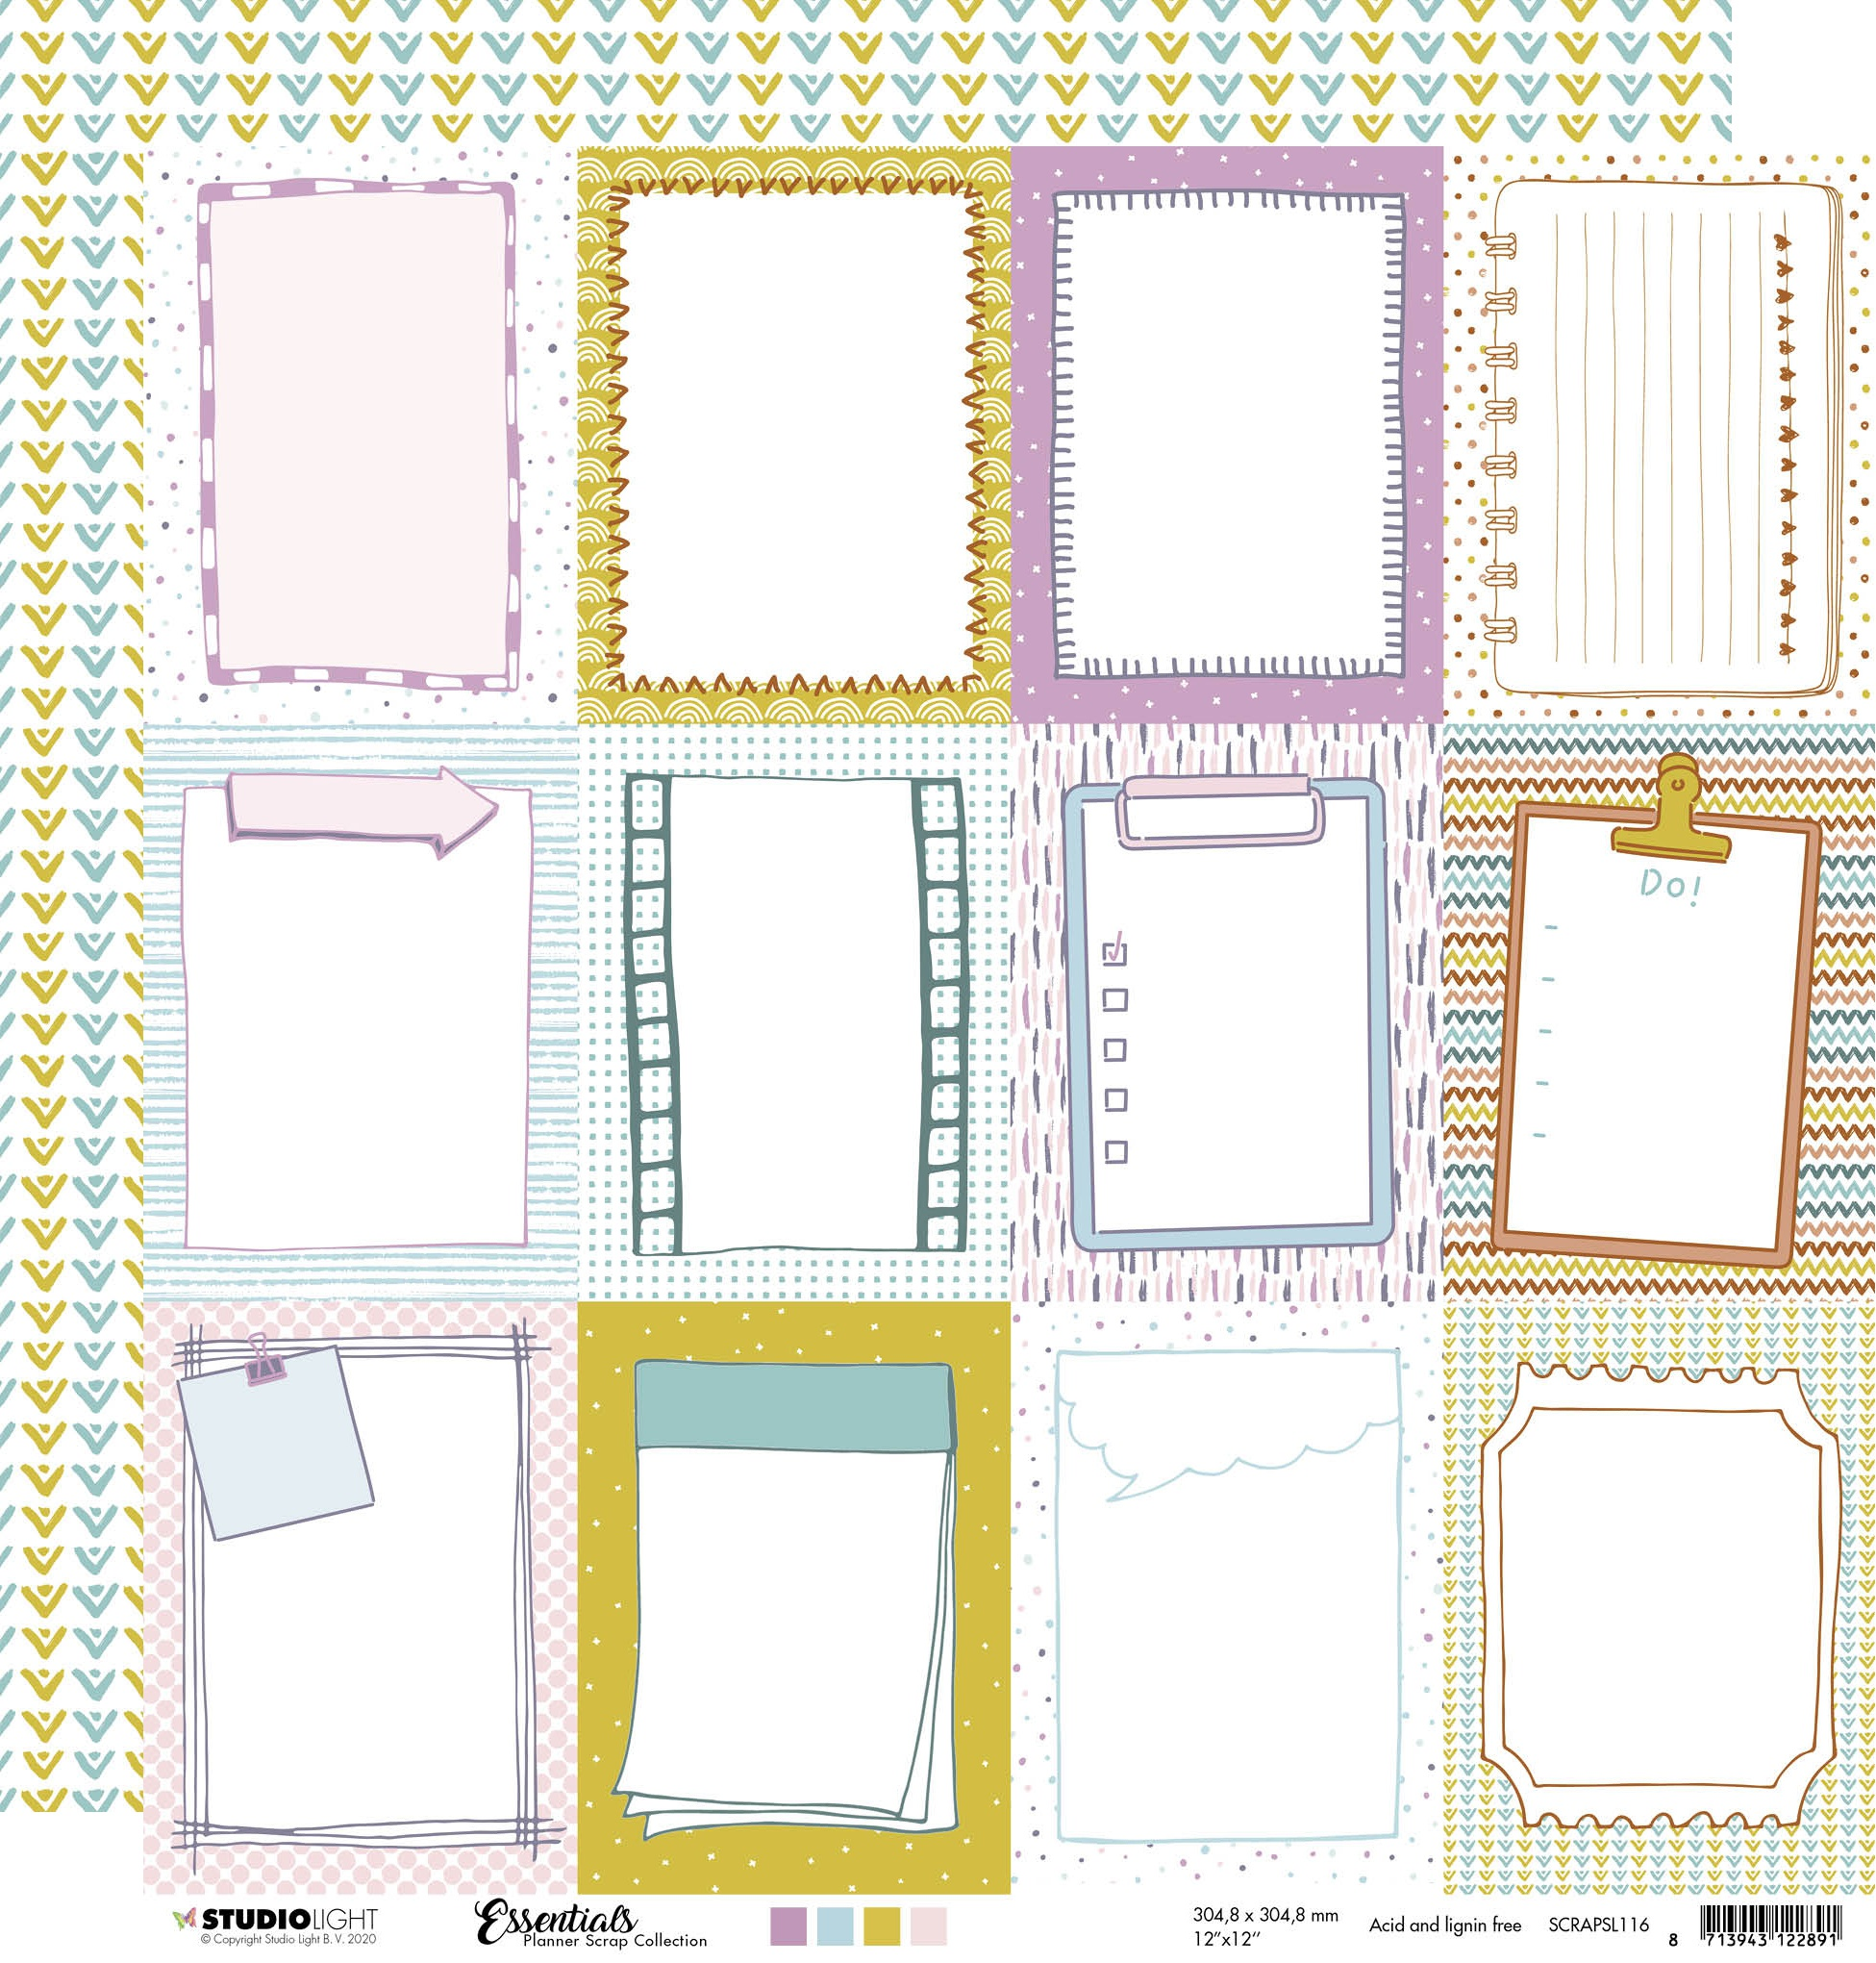 Studio Light Essentials Planner Collection 116